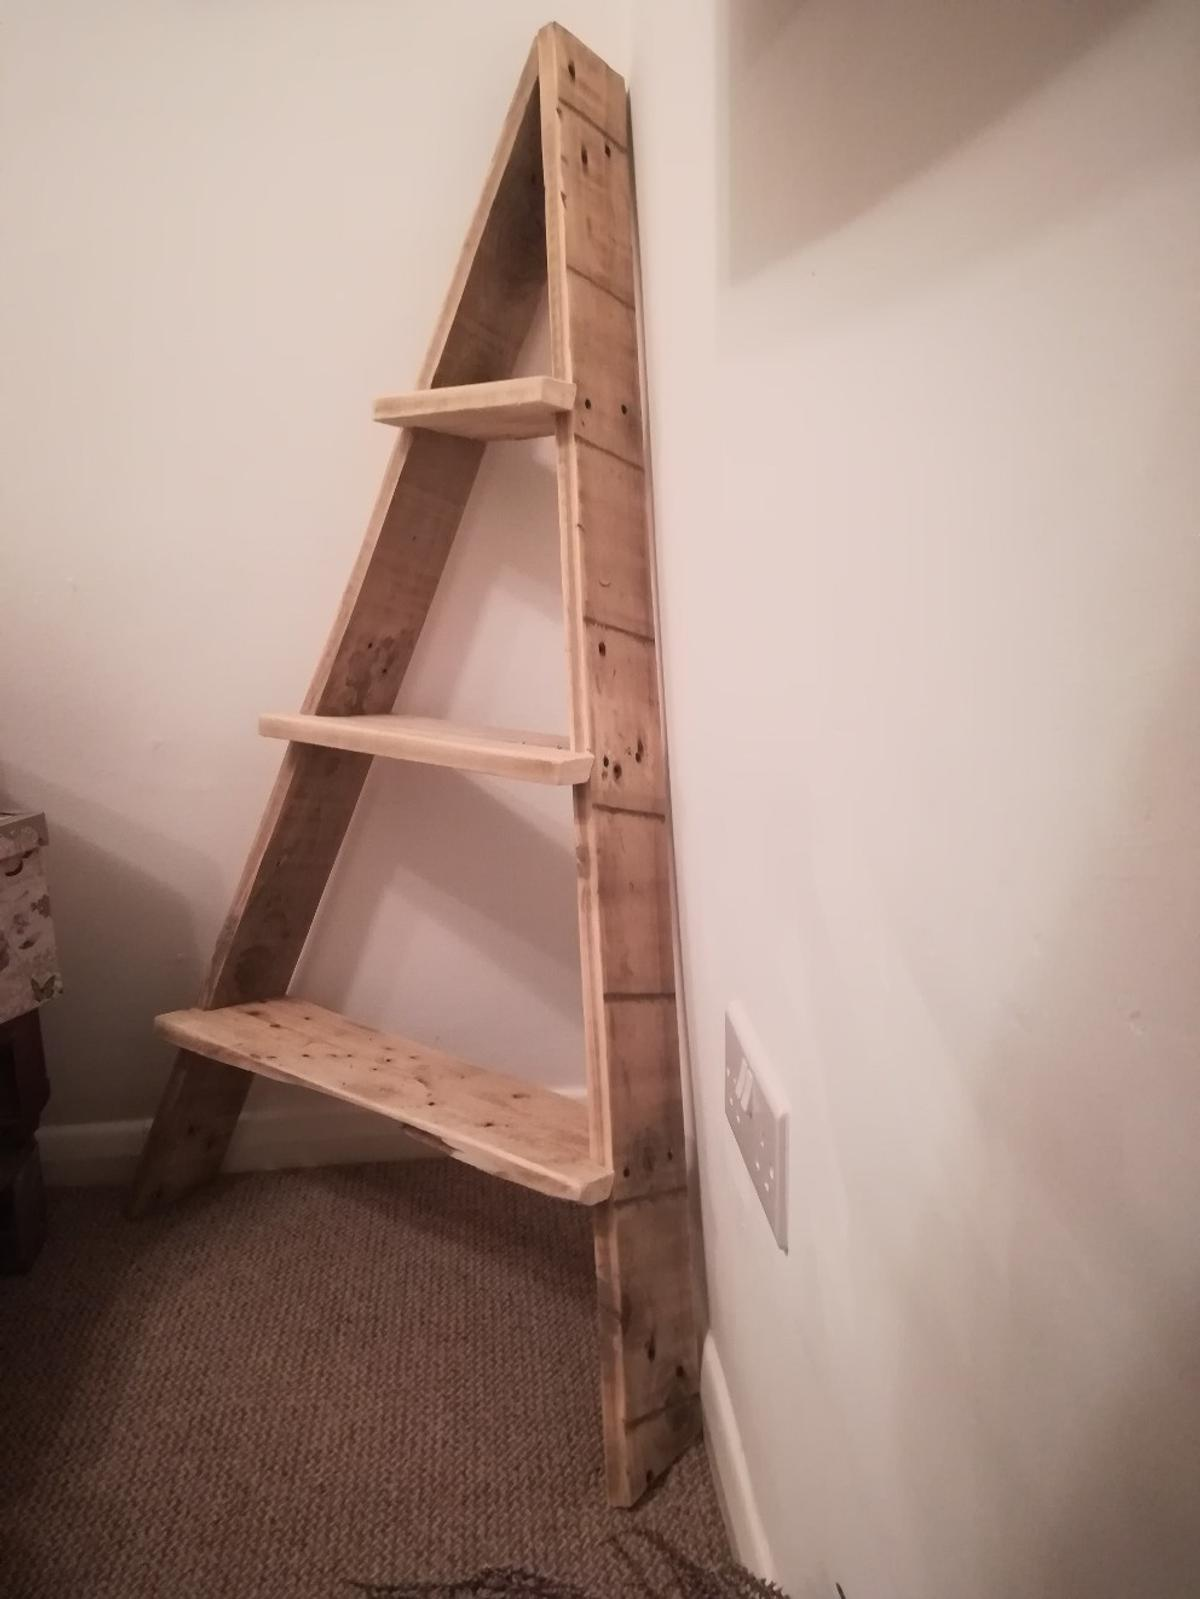 3 Tier Rustic Corner Ladder In Tq12 Watcombe For 30 00 For Sale Shpock